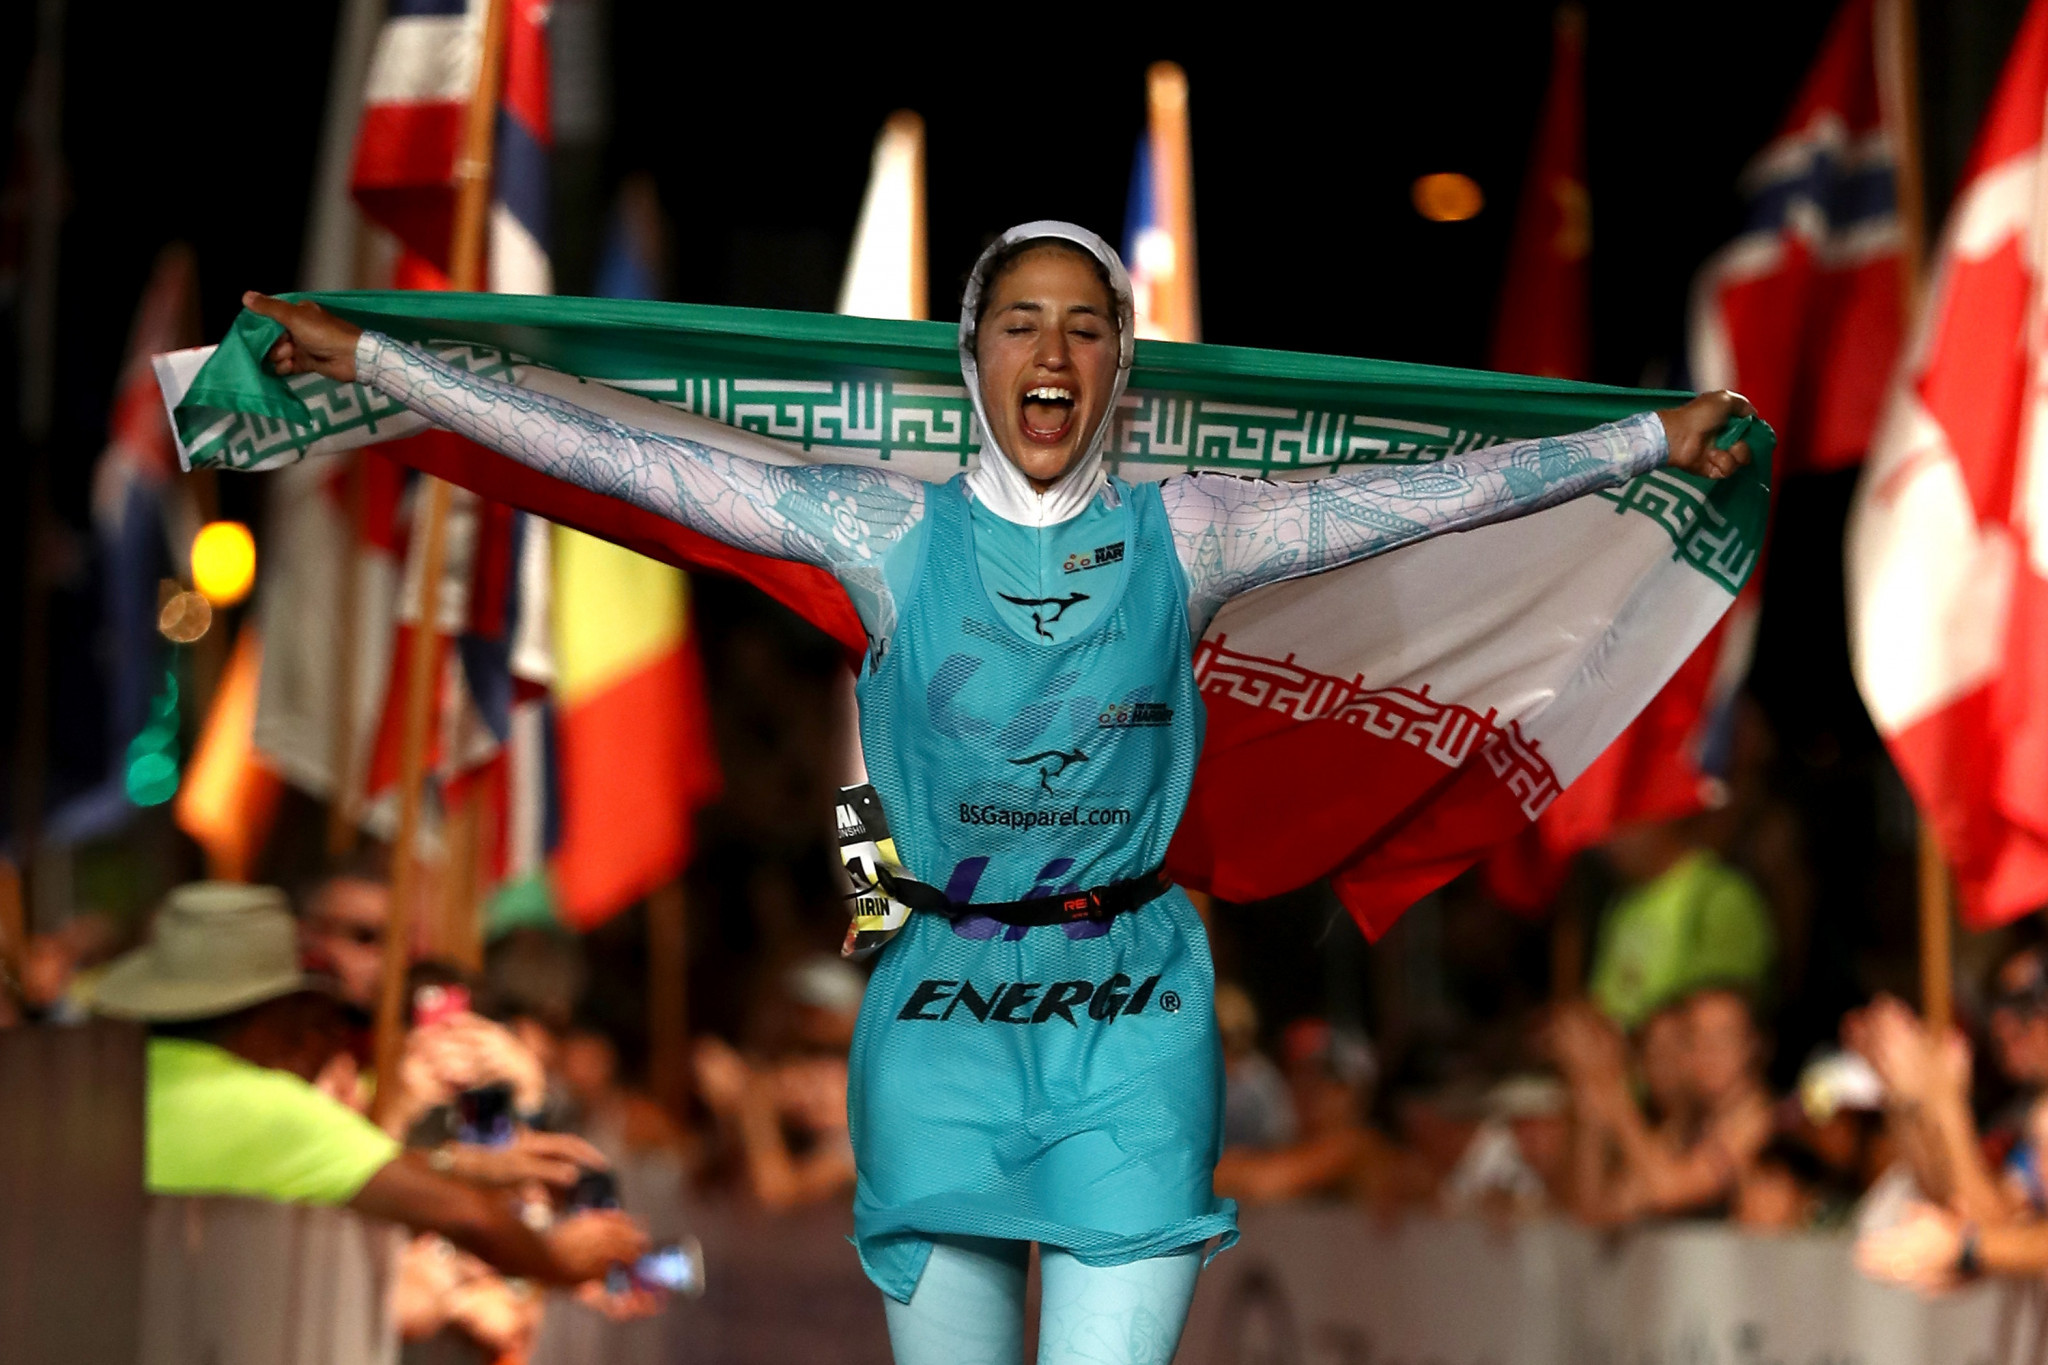 Gerami poised to represent Iran in triathlon at 2018 Asian Games